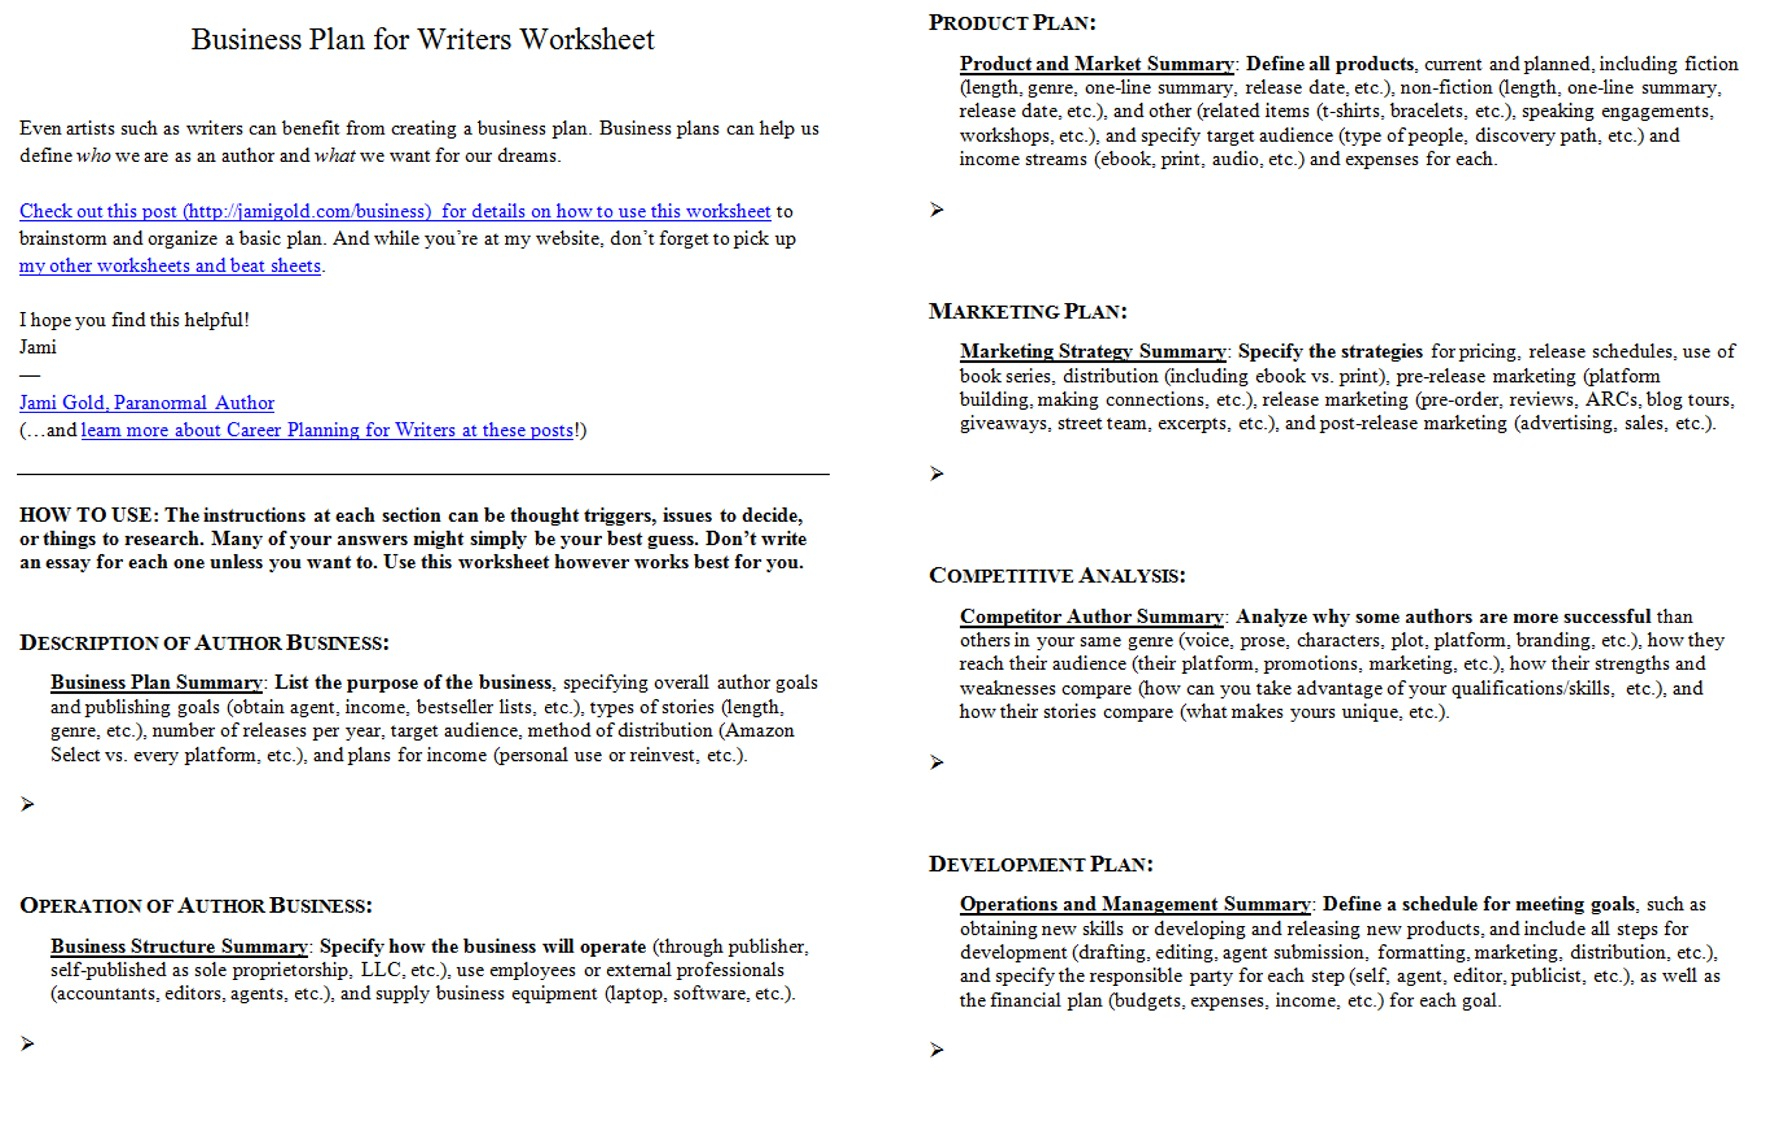 Weirdmailus  Prepossessing Worksheets For Writers  Jami Gold Paranormal Author With Glamorous Screen Shot Of Both Pages Of The Business Plan For Writers Worksheet With Agreeable Tree Diagram Probability Worksheet Also Sat Grammar Worksheets In Addition Wedding Day Timeline Worksheet And K Worksheets As Well As Wilson Reading Worksheets Additionally Accounting Equation Worksheet From Jamigoldcom With Weirdmailus  Glamorous Worksheets For Writers  Jami Gold Paranormal Author With Agreeable Screen Shot Of Both Pages Of The Business Plan For Writers Worksheet And Prepossessing Tree Diagram Probability Worksheet Also Sat Grammar Worksheets In Addition Wedding Day Timeline Worksheet From Jamigoldcom